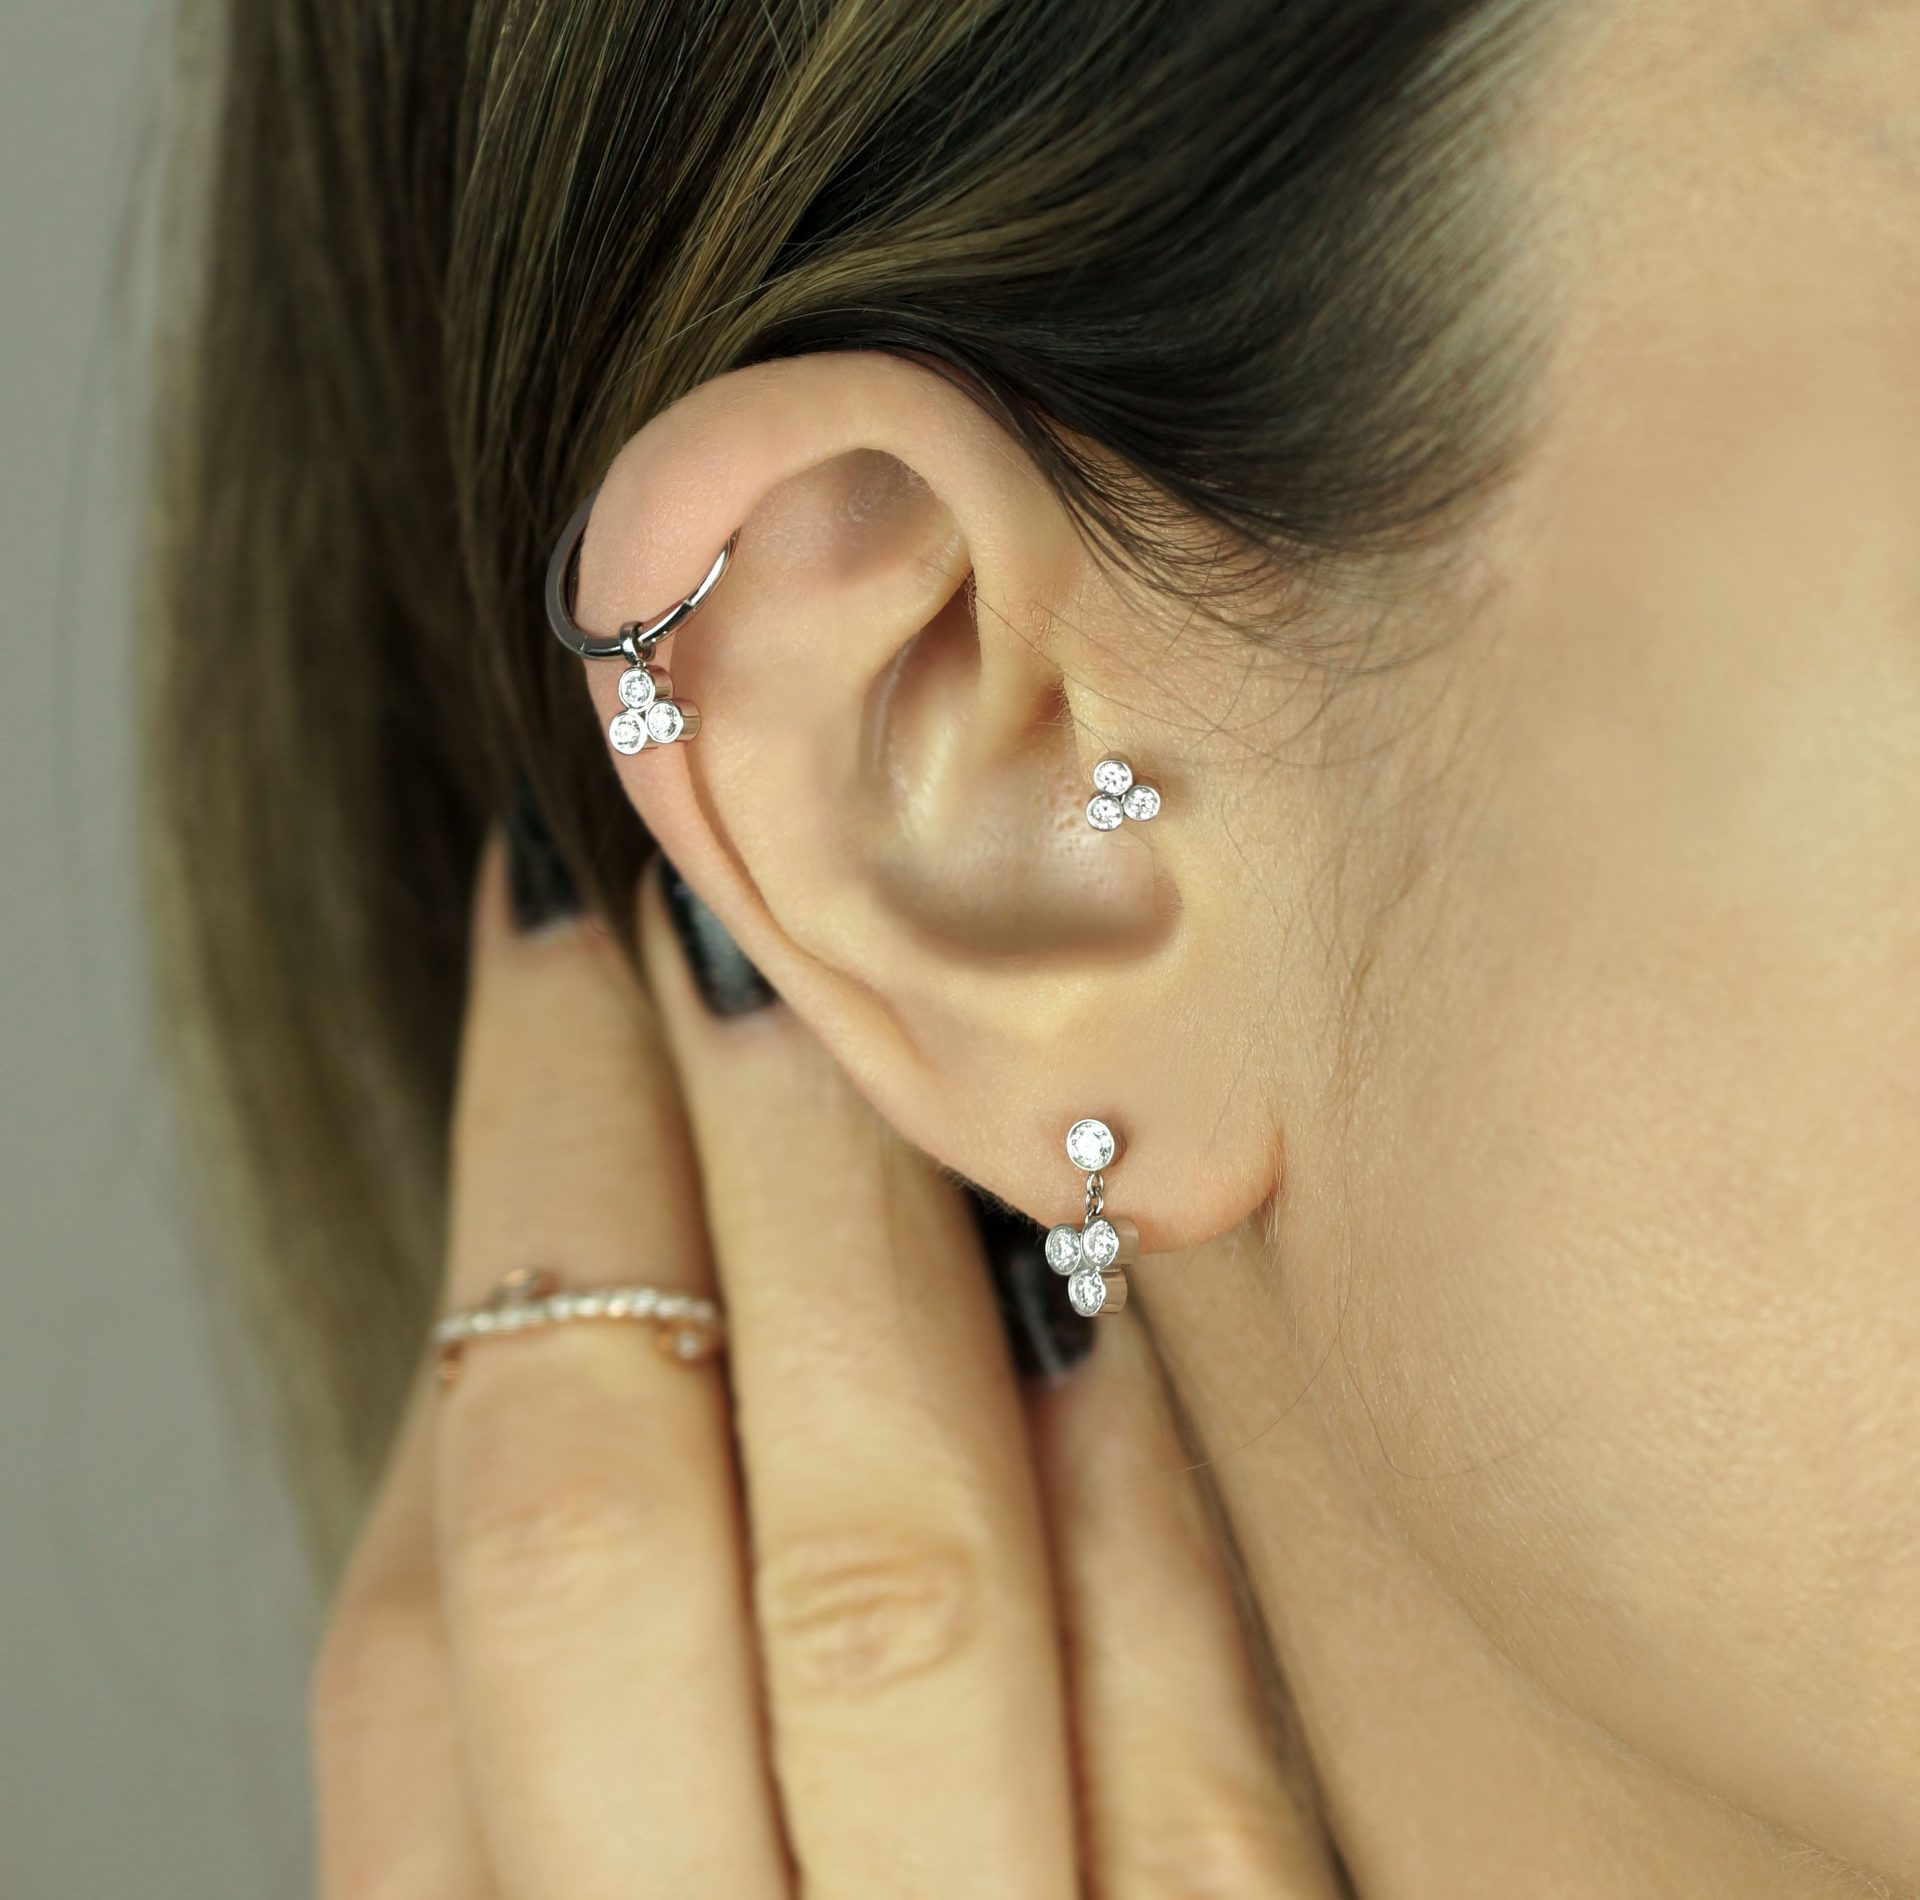 Lena Cohen leading british brand luxury piercing fine jewelry